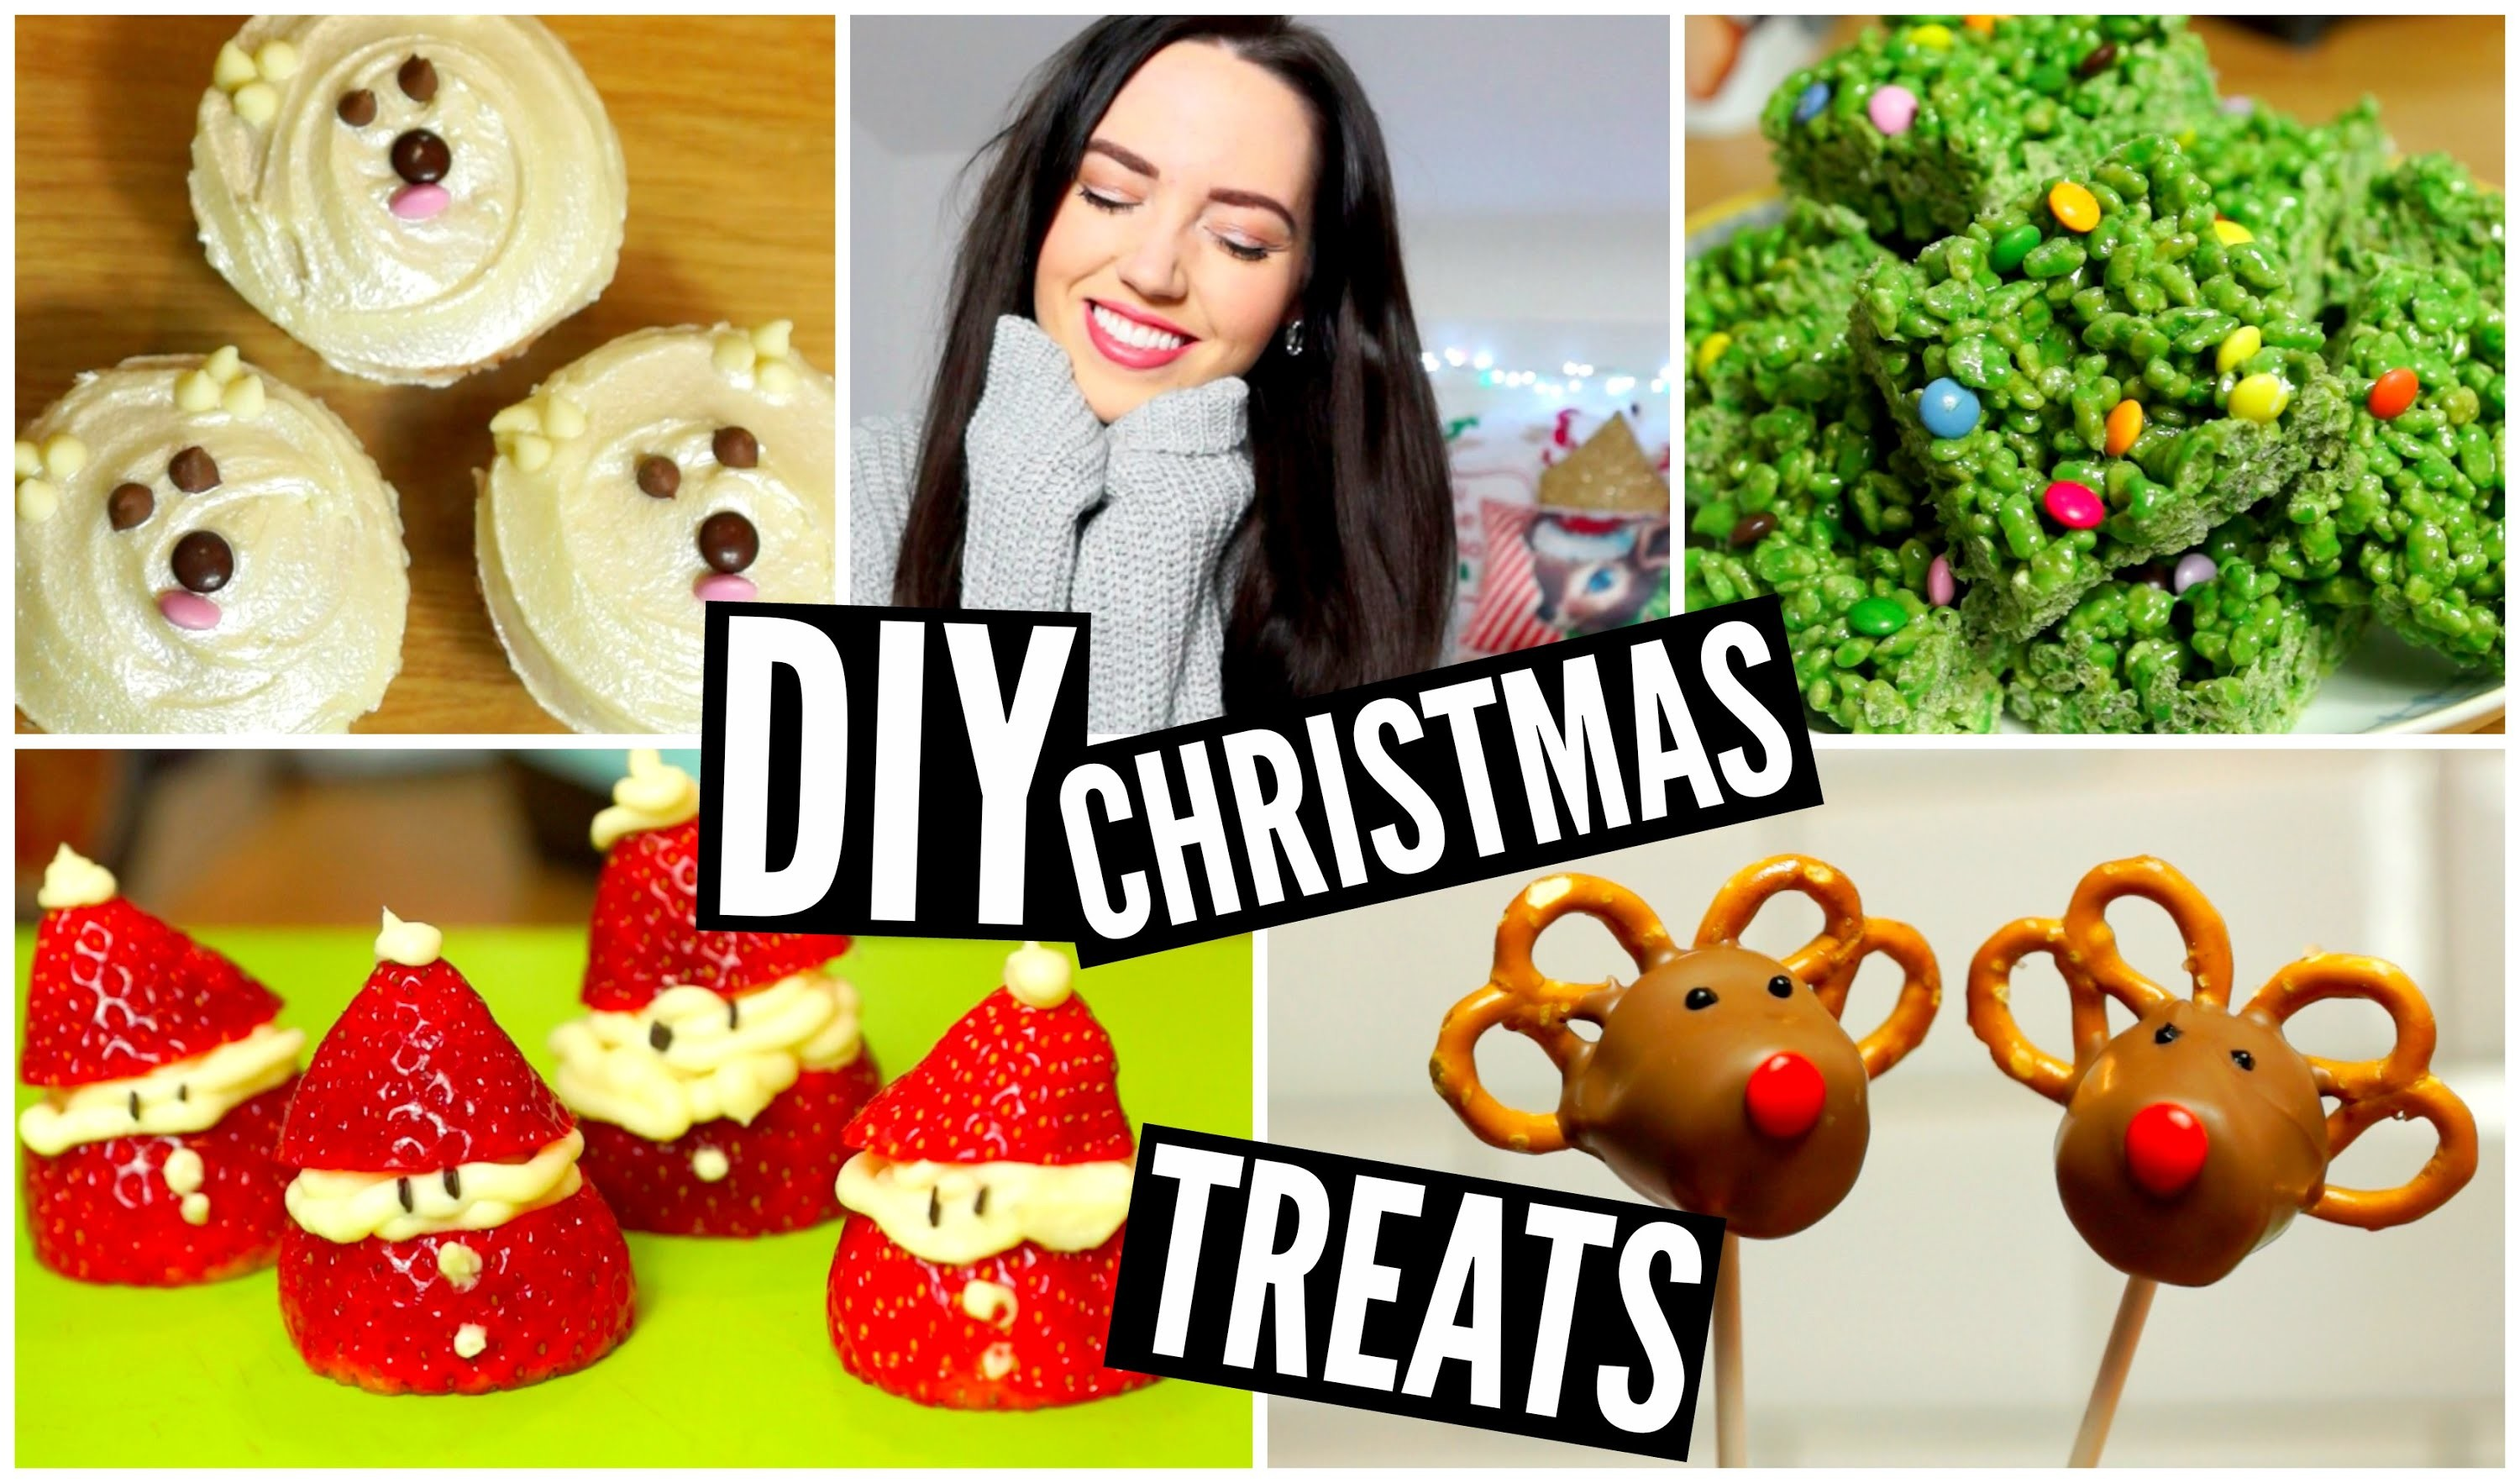 DIY Easy Christmas Treats | velvetgh0st ♡